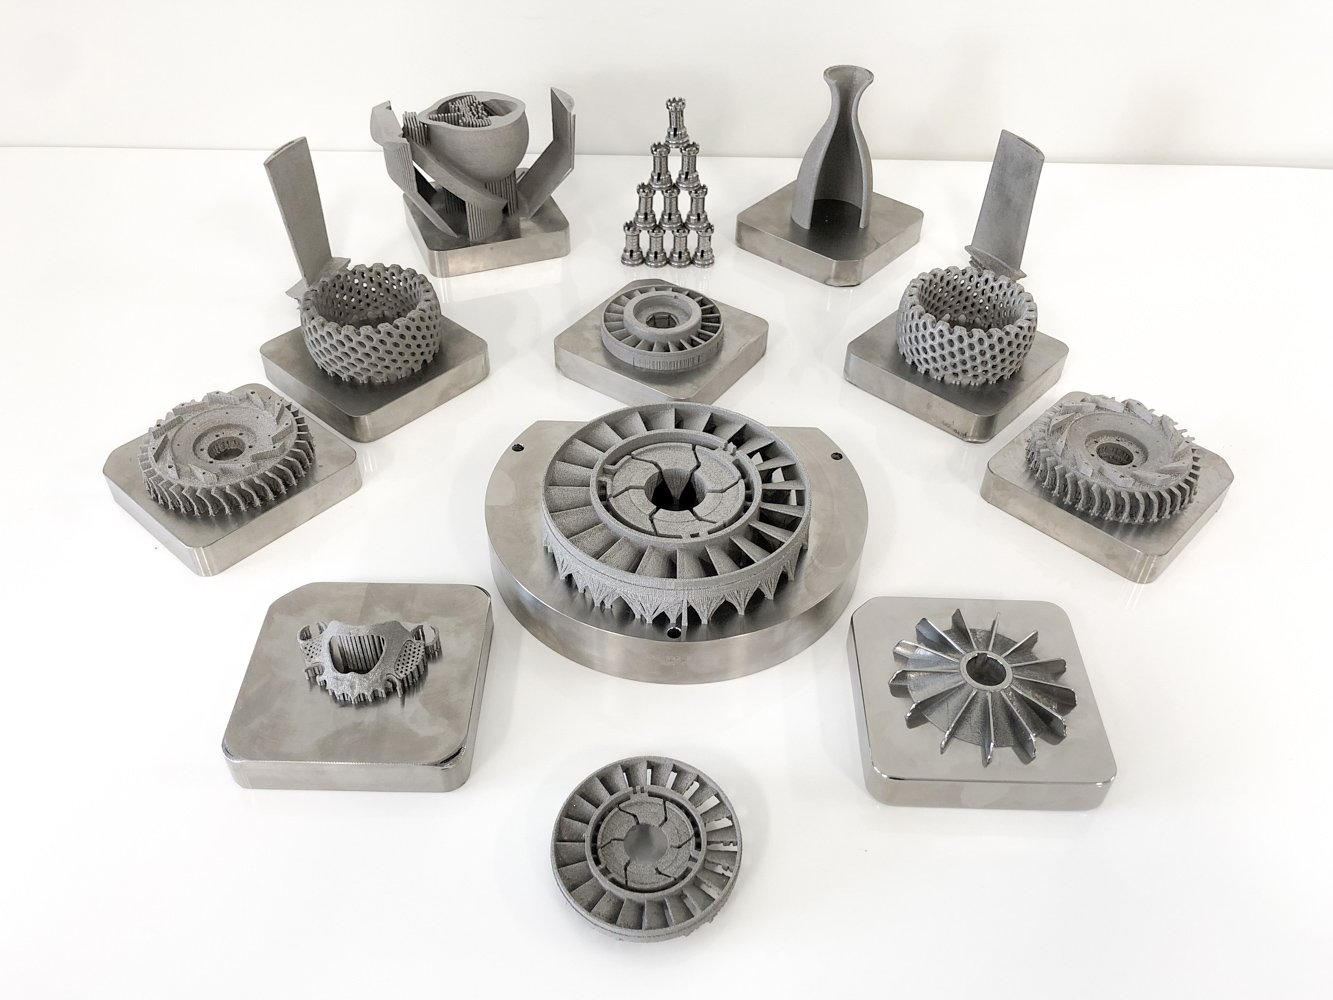 3D printing samples not for sale